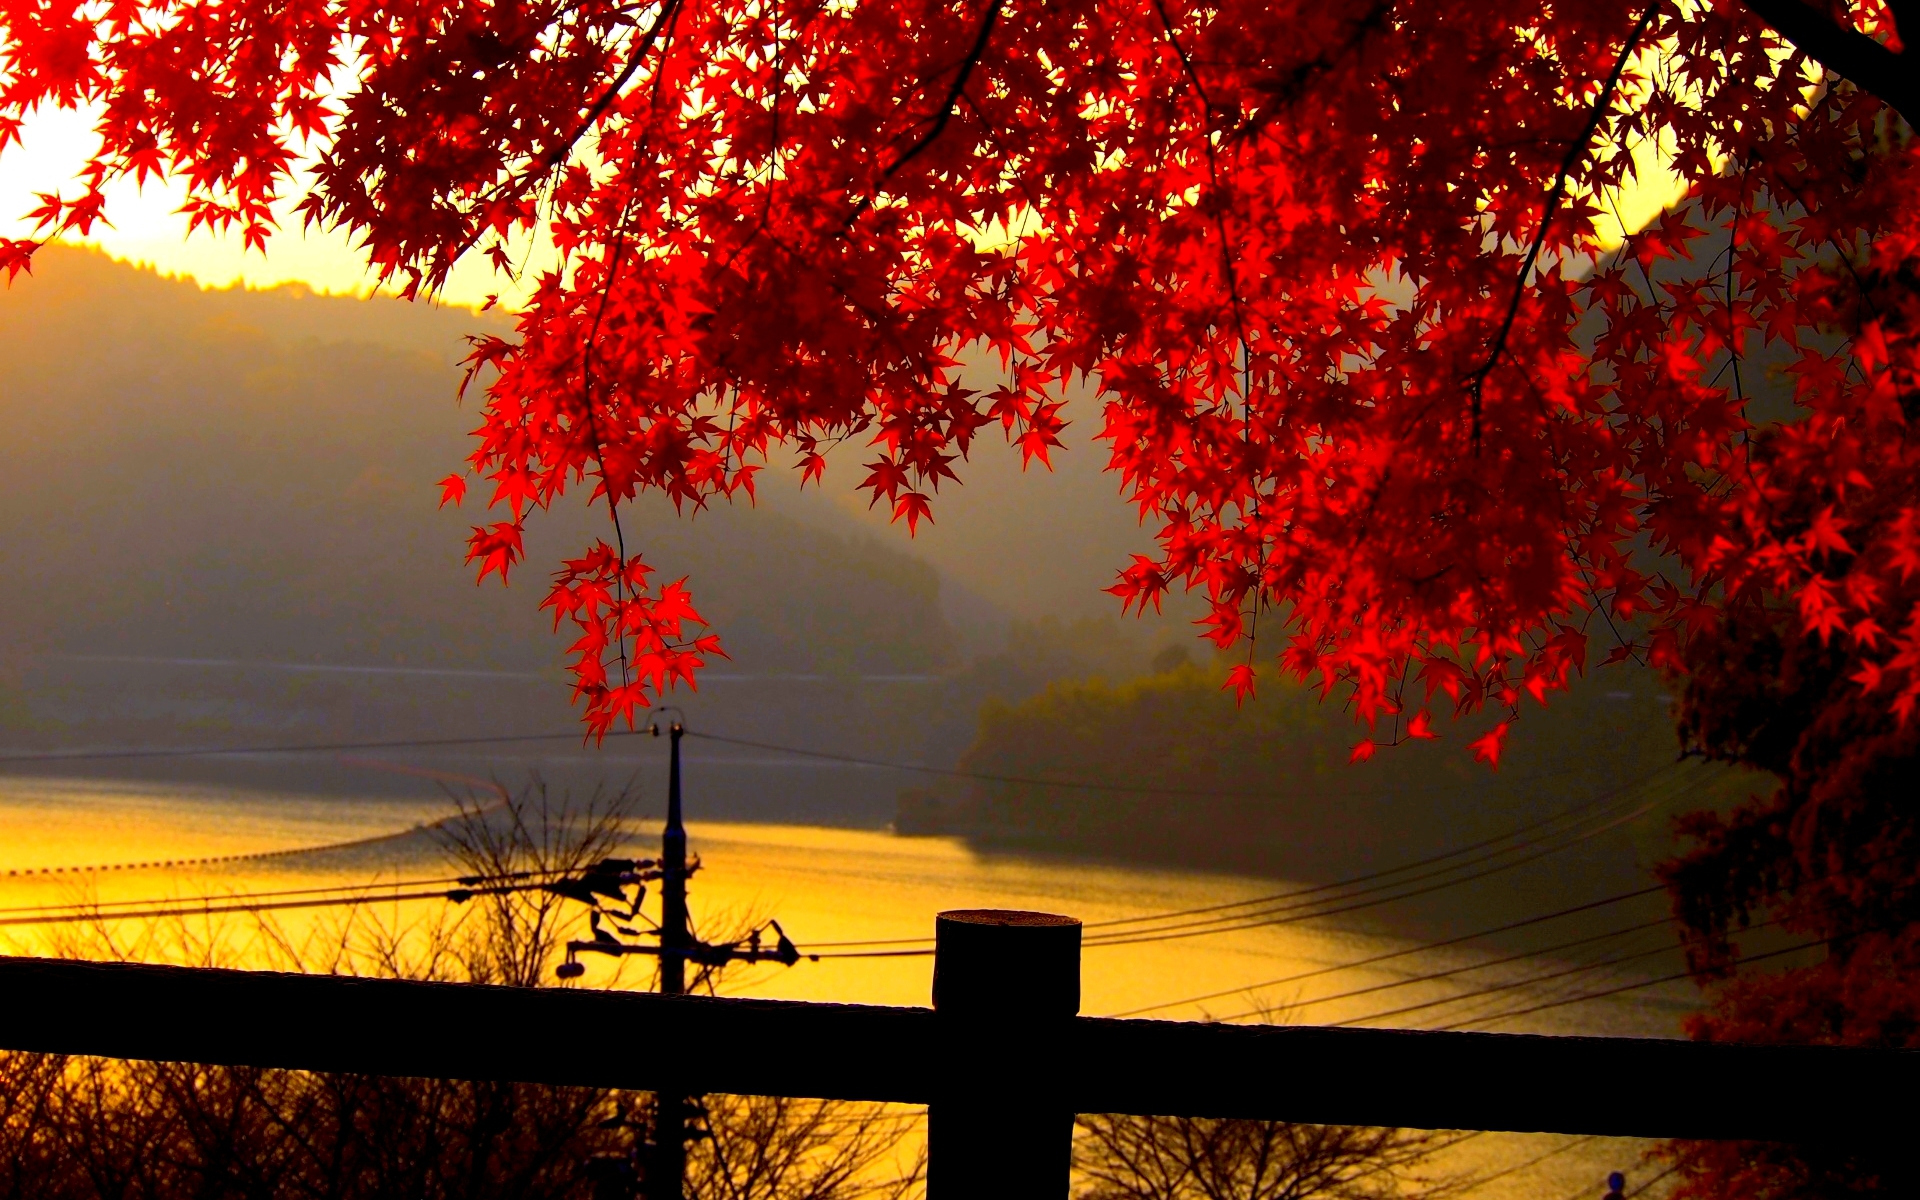 Fall Wallpaper Red Leaves Hd Download For Mac Pc Iphone